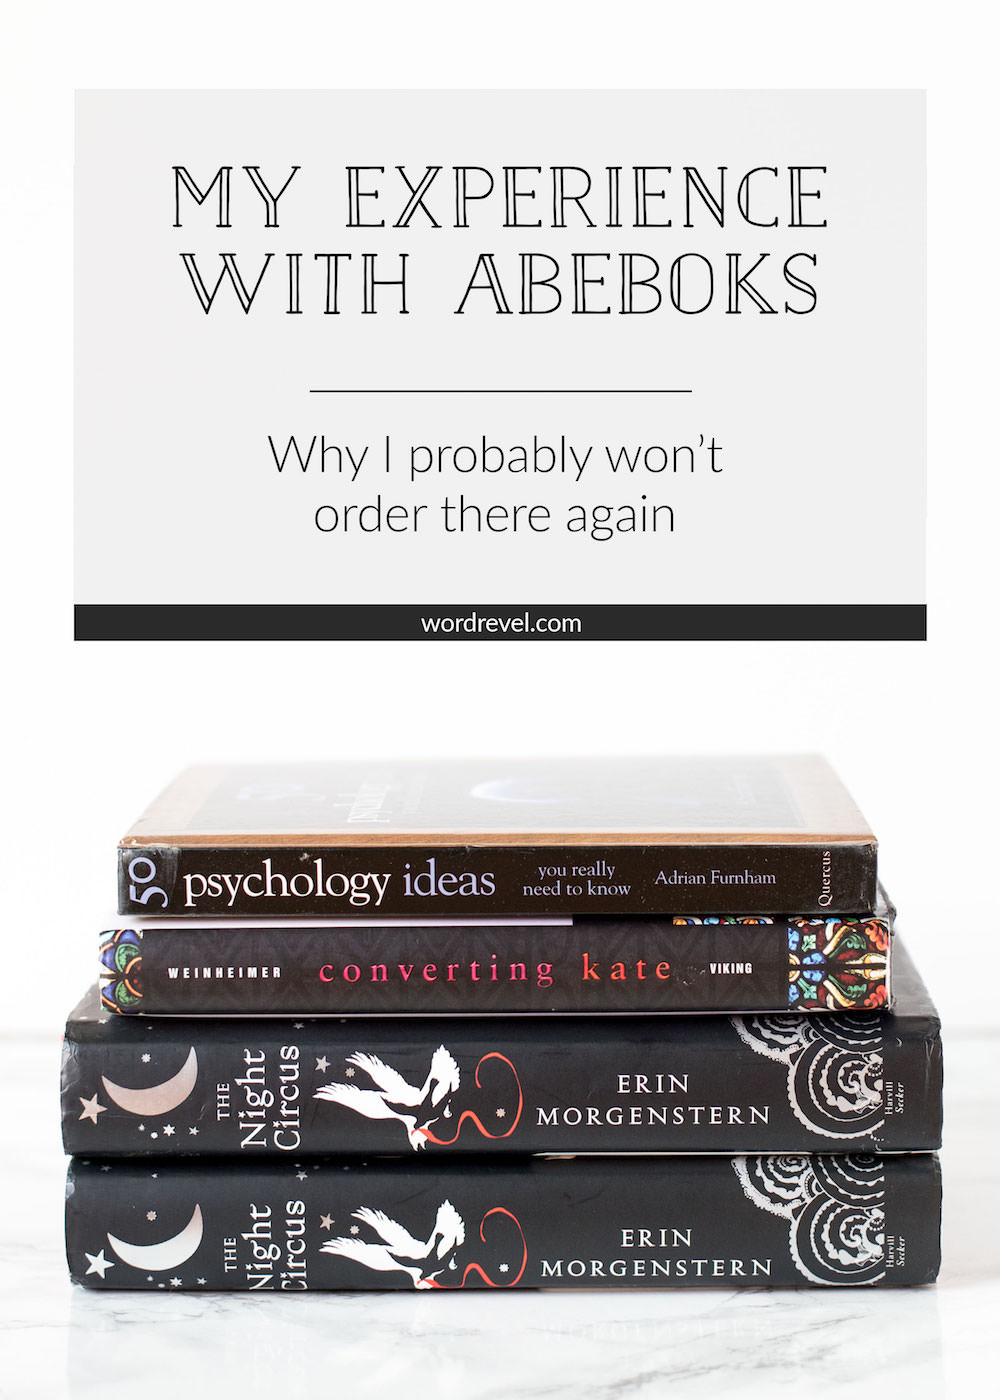 My Experience with AbeBooks; Why I probably won't order there again